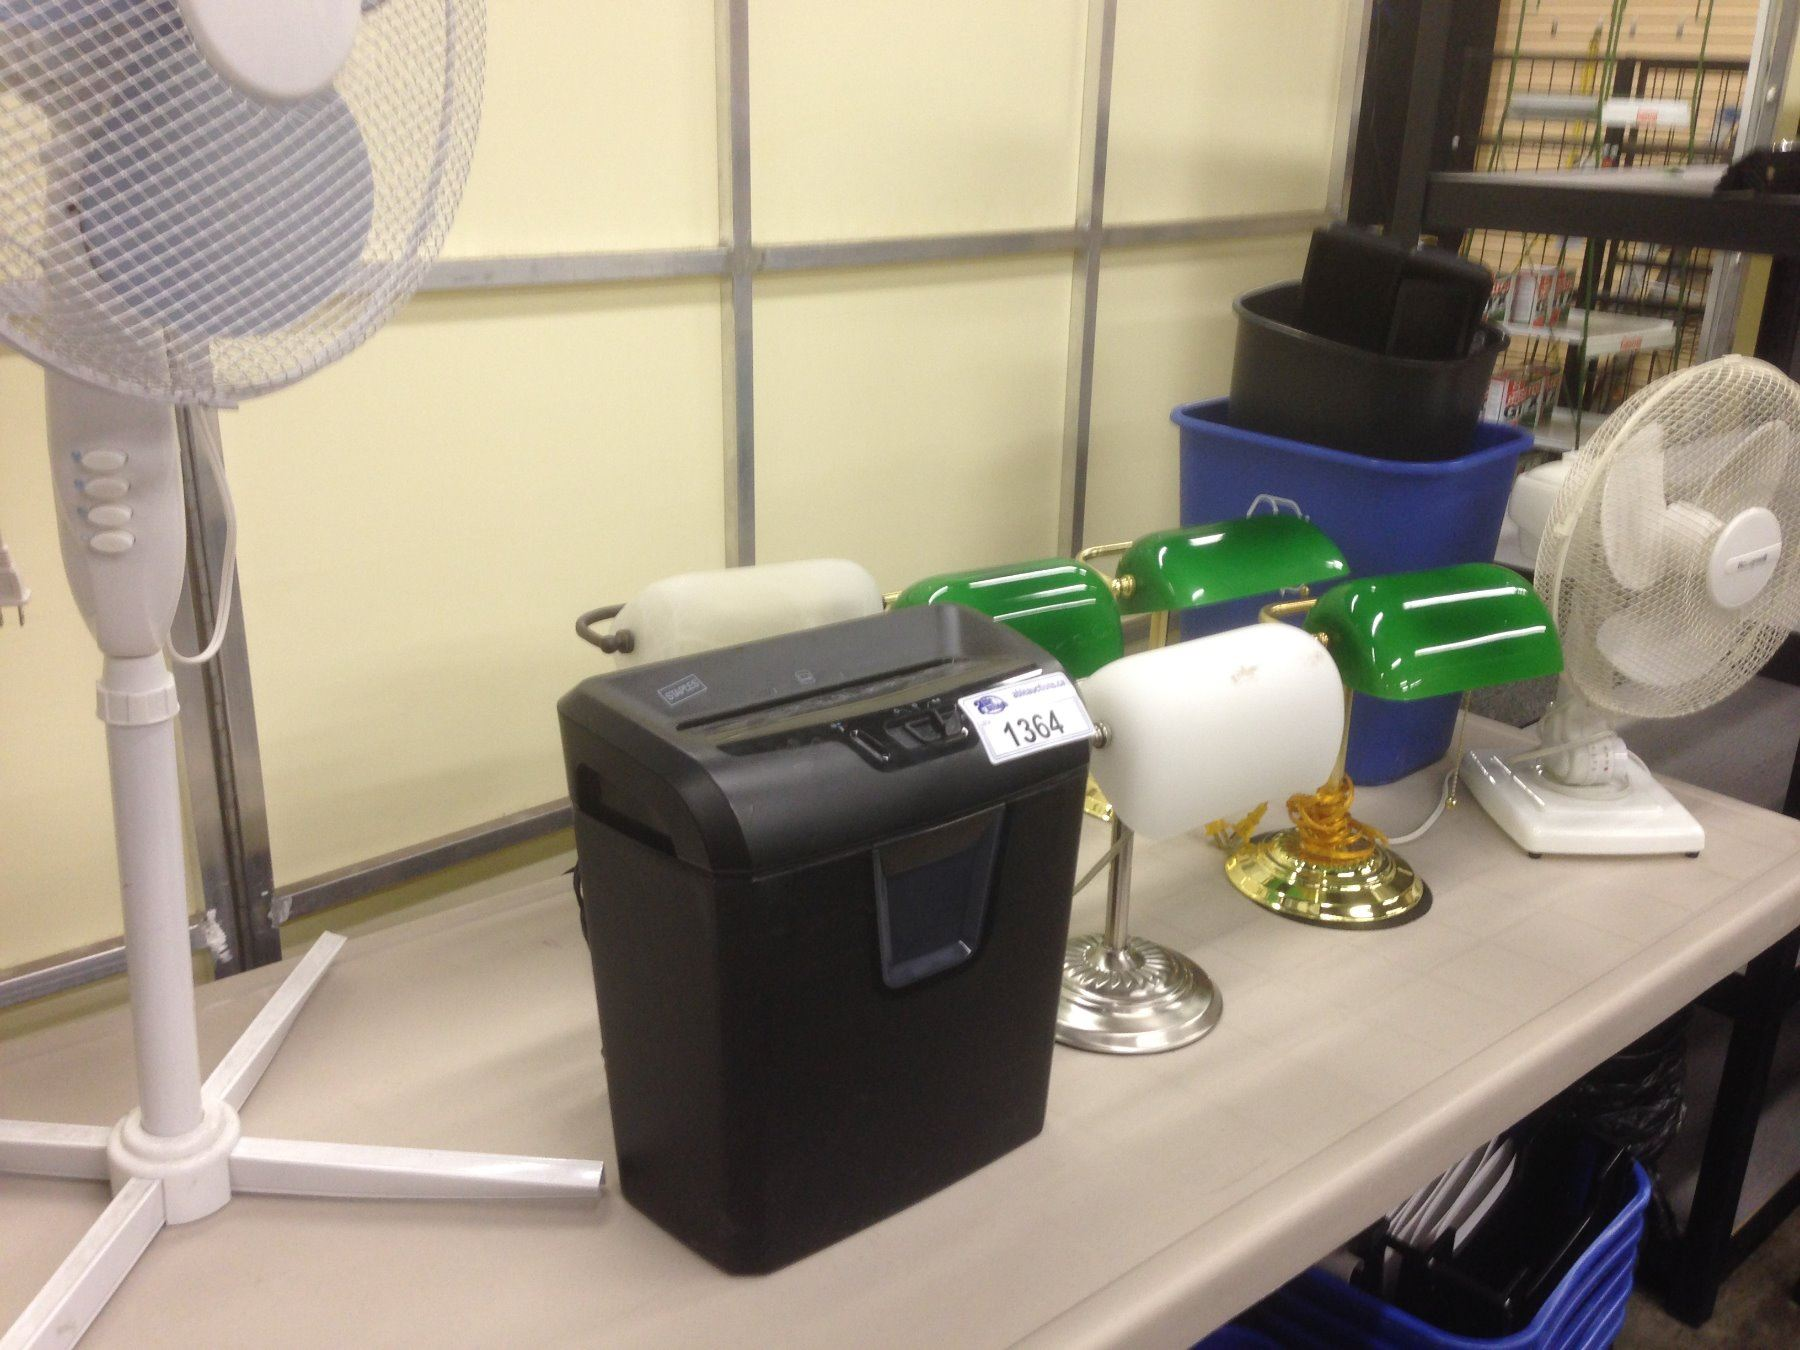 Image 1 Lot Of Office Items Inc Lamps Fan Garbage Cans And